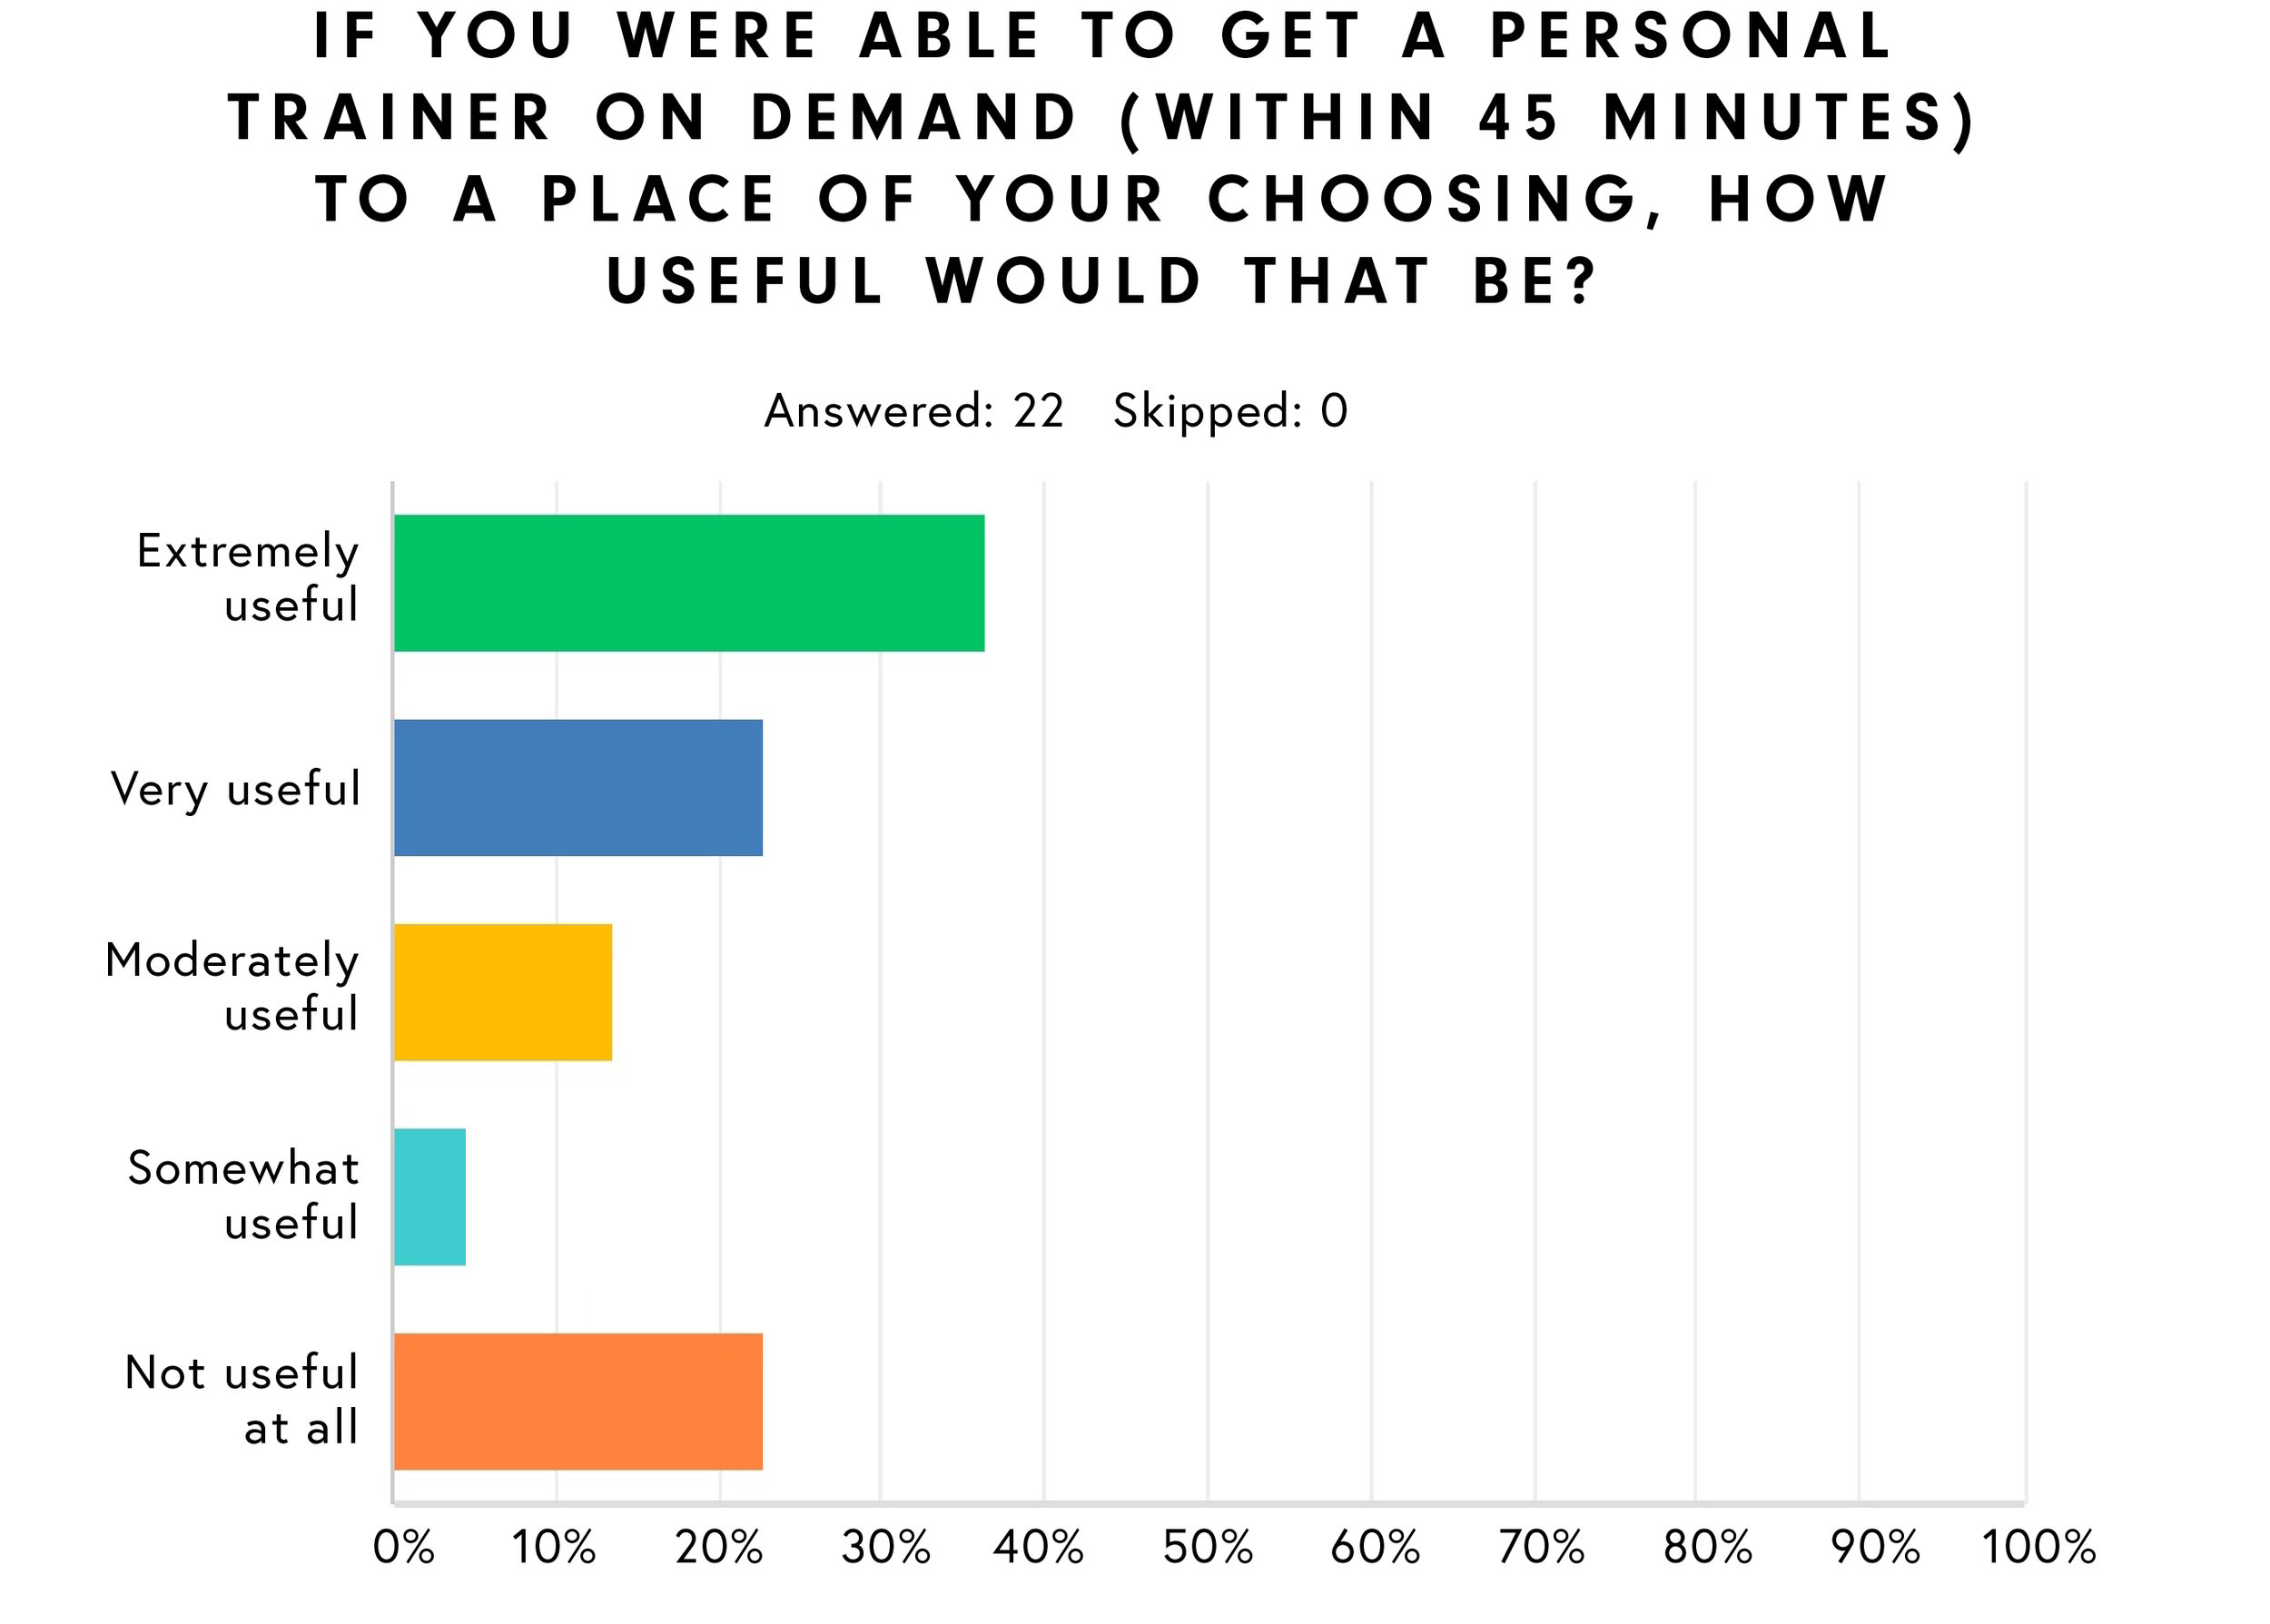 ON DEMAND TRAINING - Survey results show that approximately 60 % of respondents between ages 18-44 thought on demanding training was very useful or extremely useful.